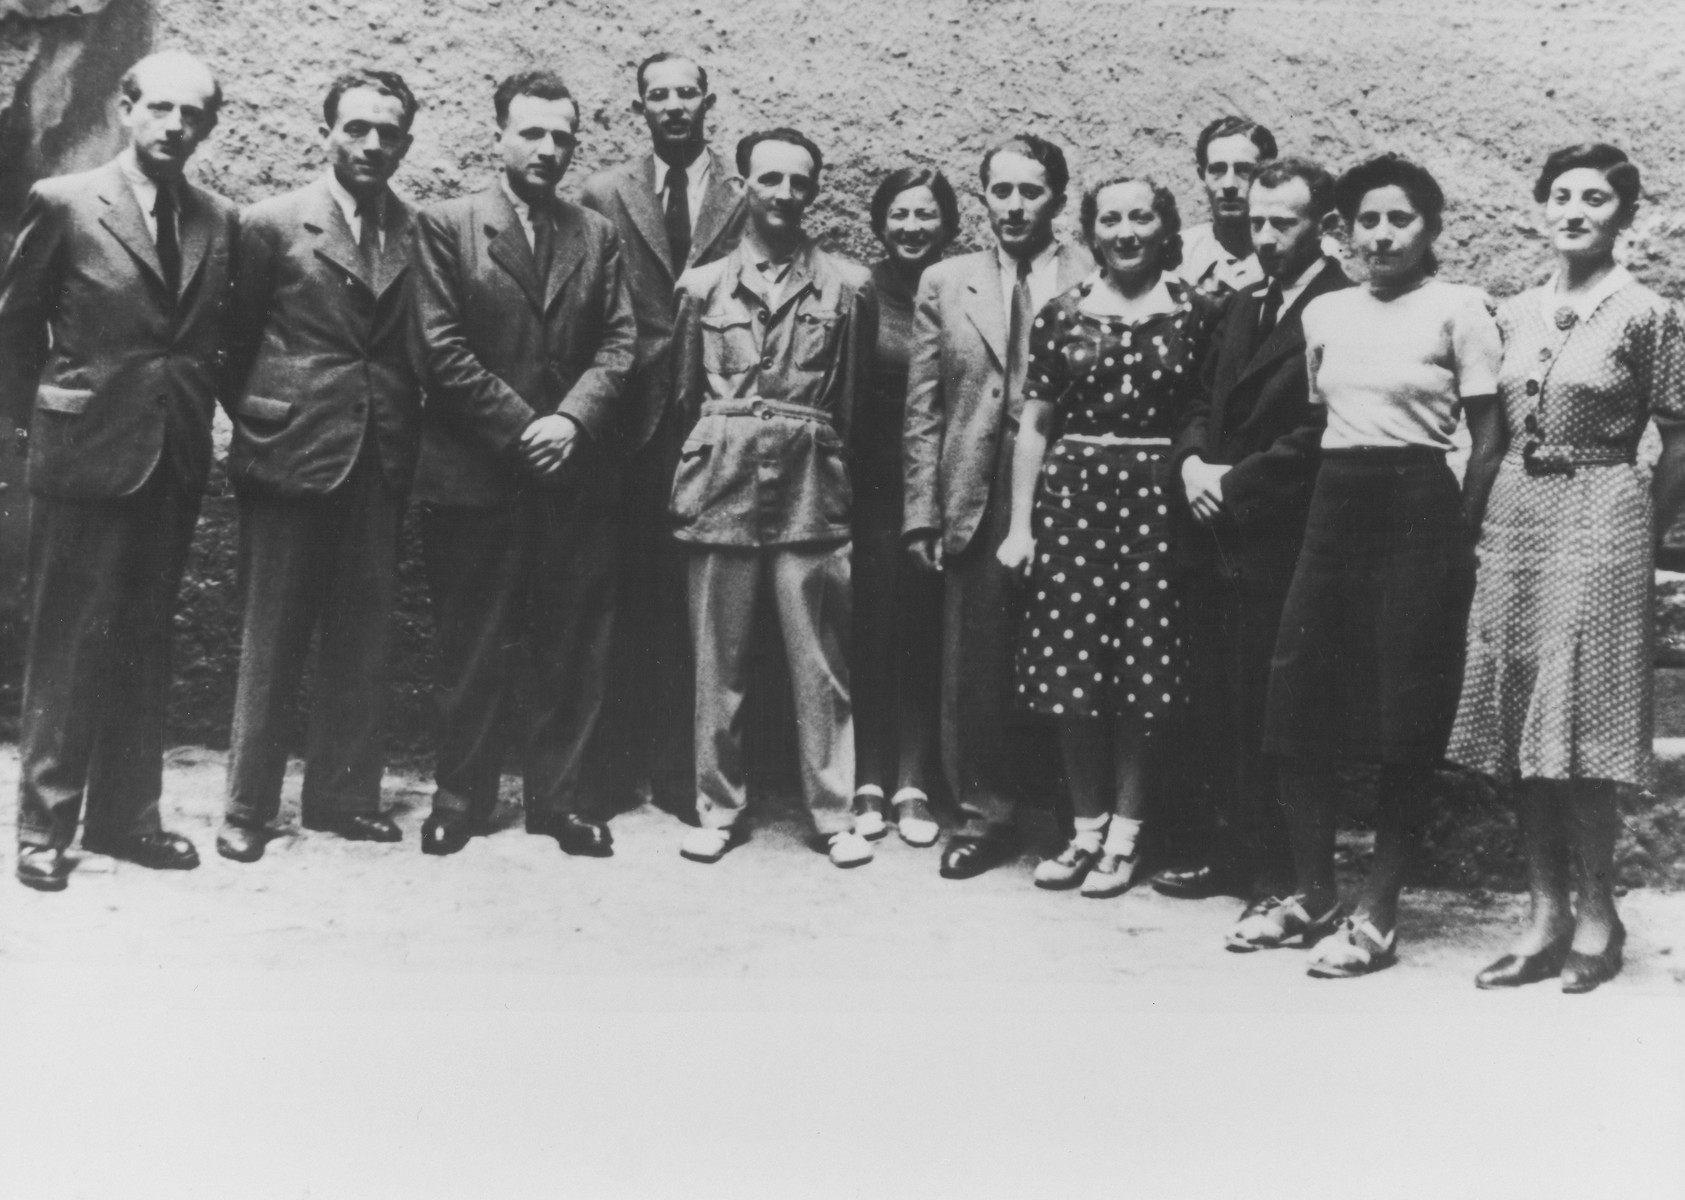 Group portrait of teachers at the Jewish school in Prague.  Pictured from left to right are Teitelbaum, unknown, Gruenberg, unknown, Pavel Weisz, the director Lauscherova, Dr. Reich, Kacerova, unknown, Sandner, Reinerova and unknown.